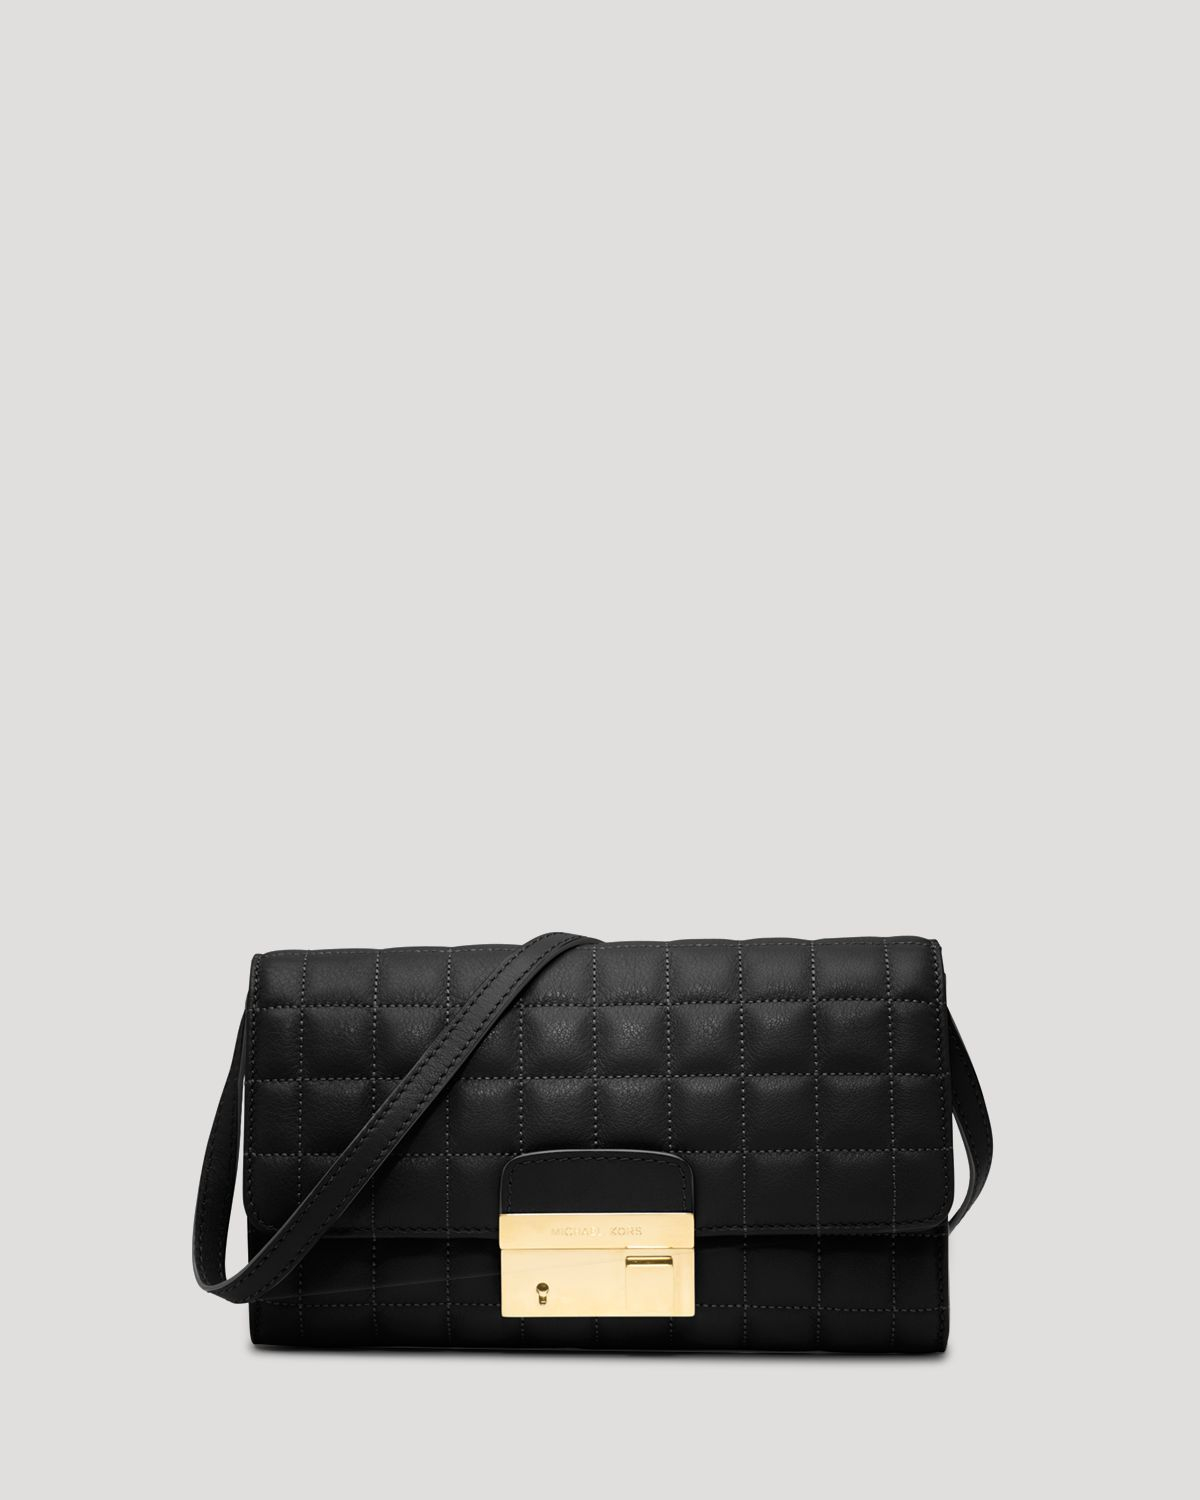 michael kors clutch gia quilted lock in black lyst. Black Bedroom Furniture Sets. Home Design Ideas